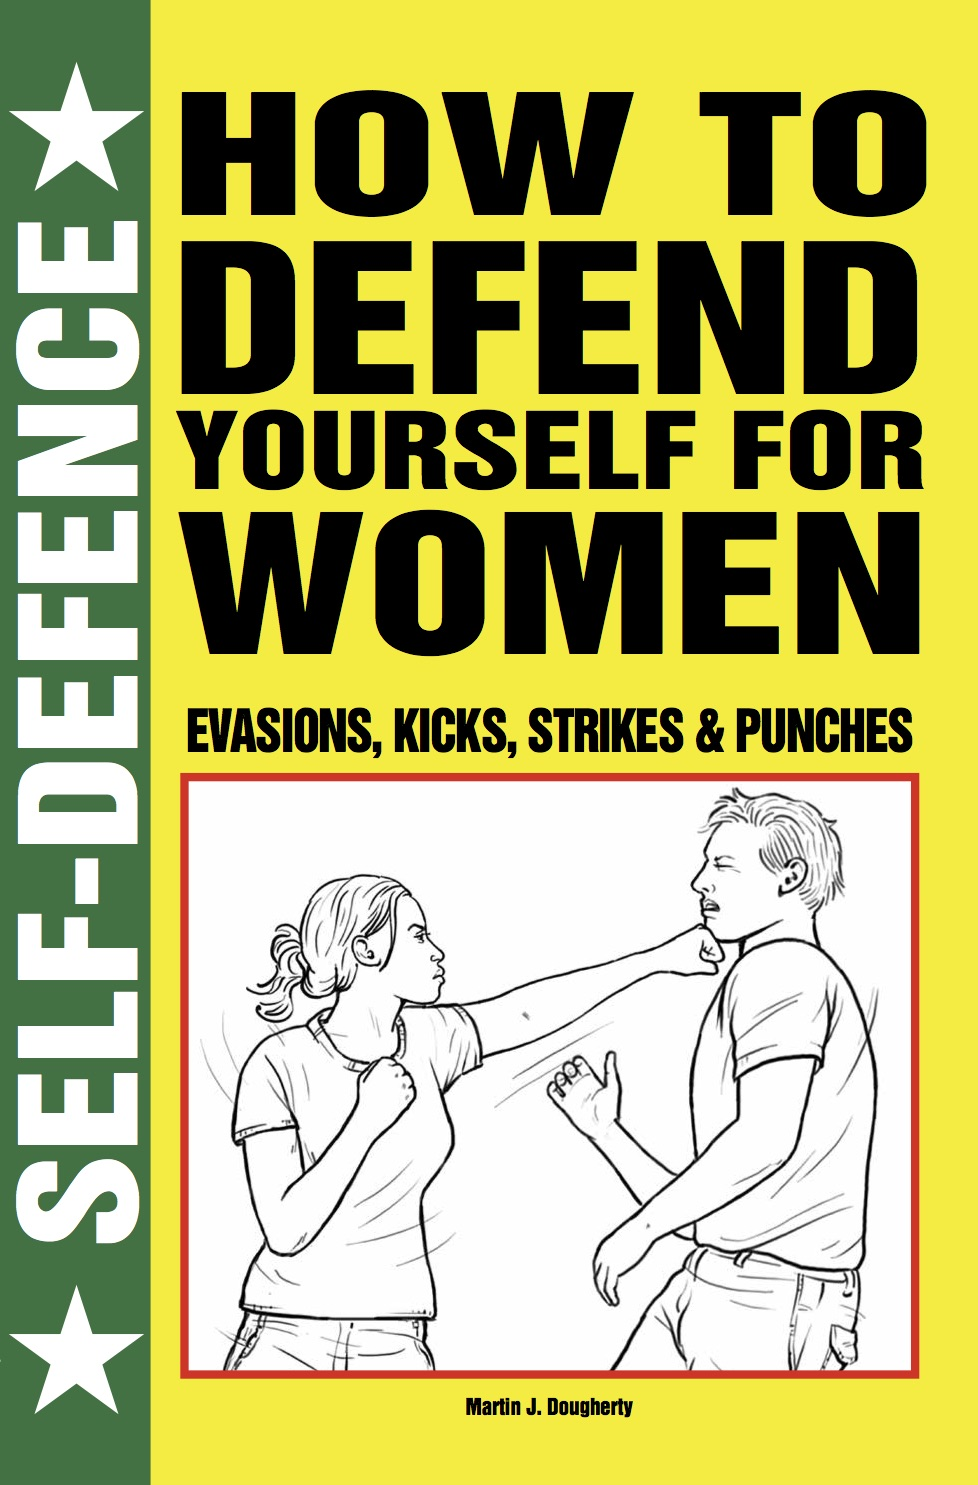 How to Defend Yourself for Women